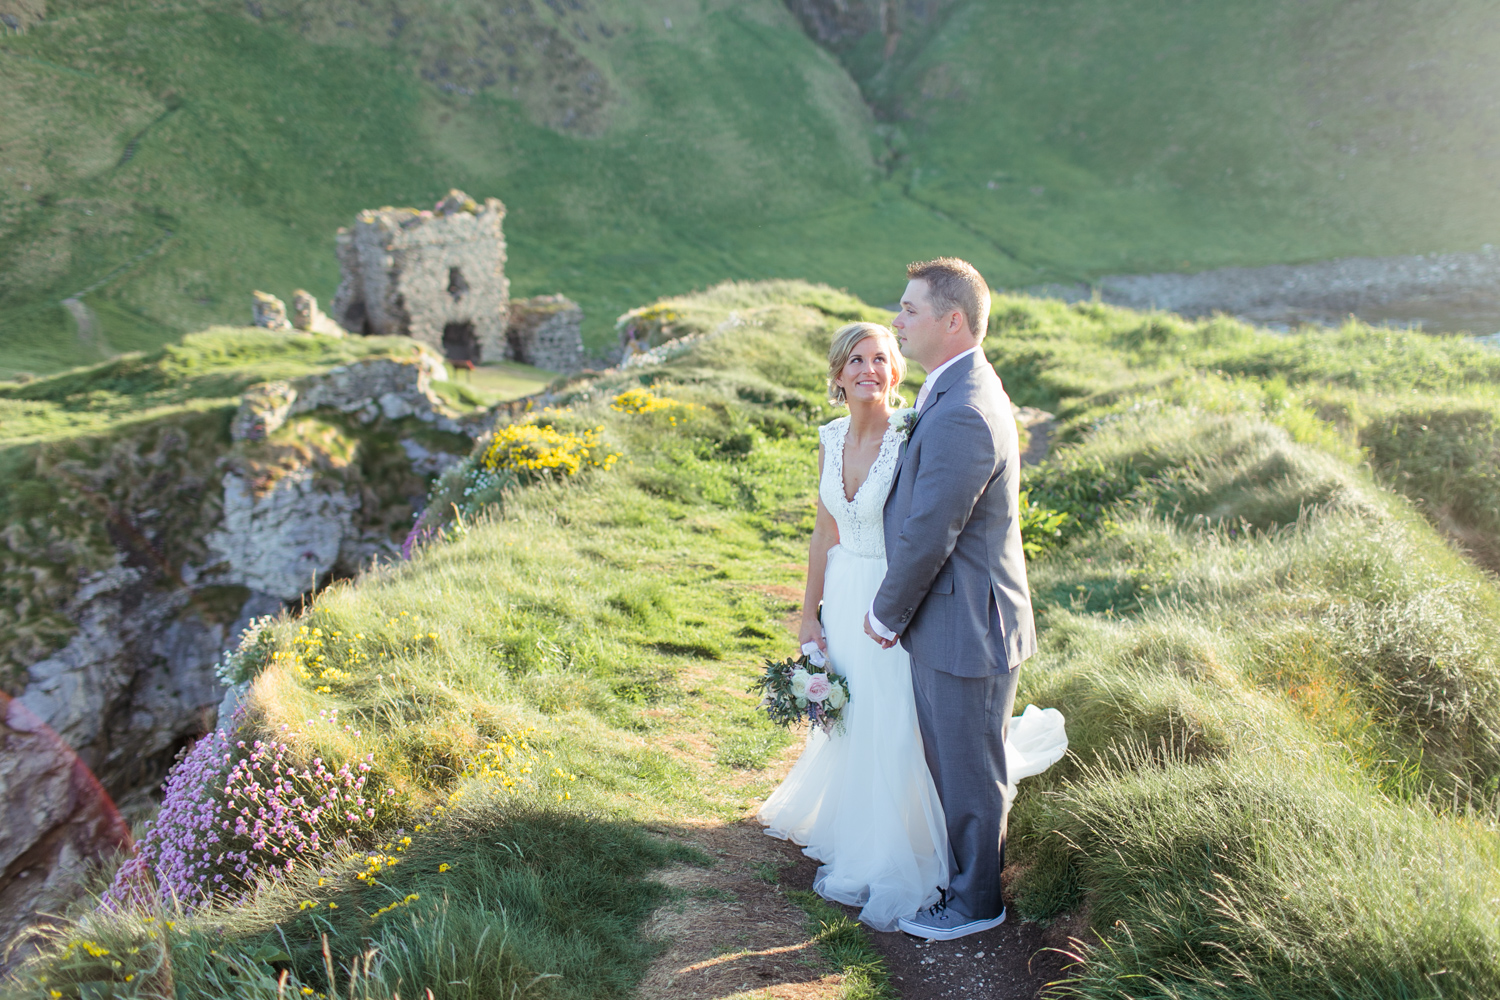 a full view of kinbane castle in the background while bride and groom are posing for their elopement photographs